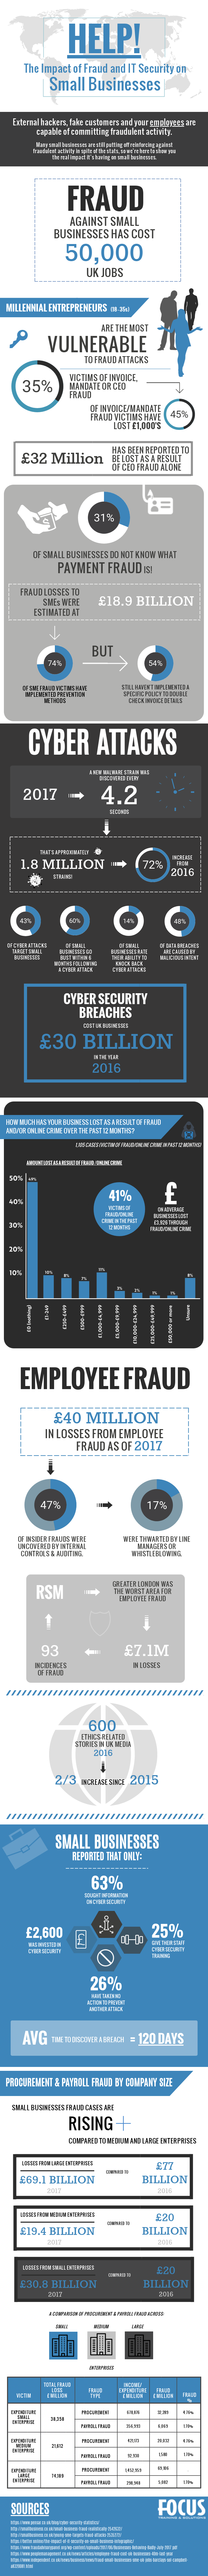 The Impact of Fraud and IT Security on Small Businesses